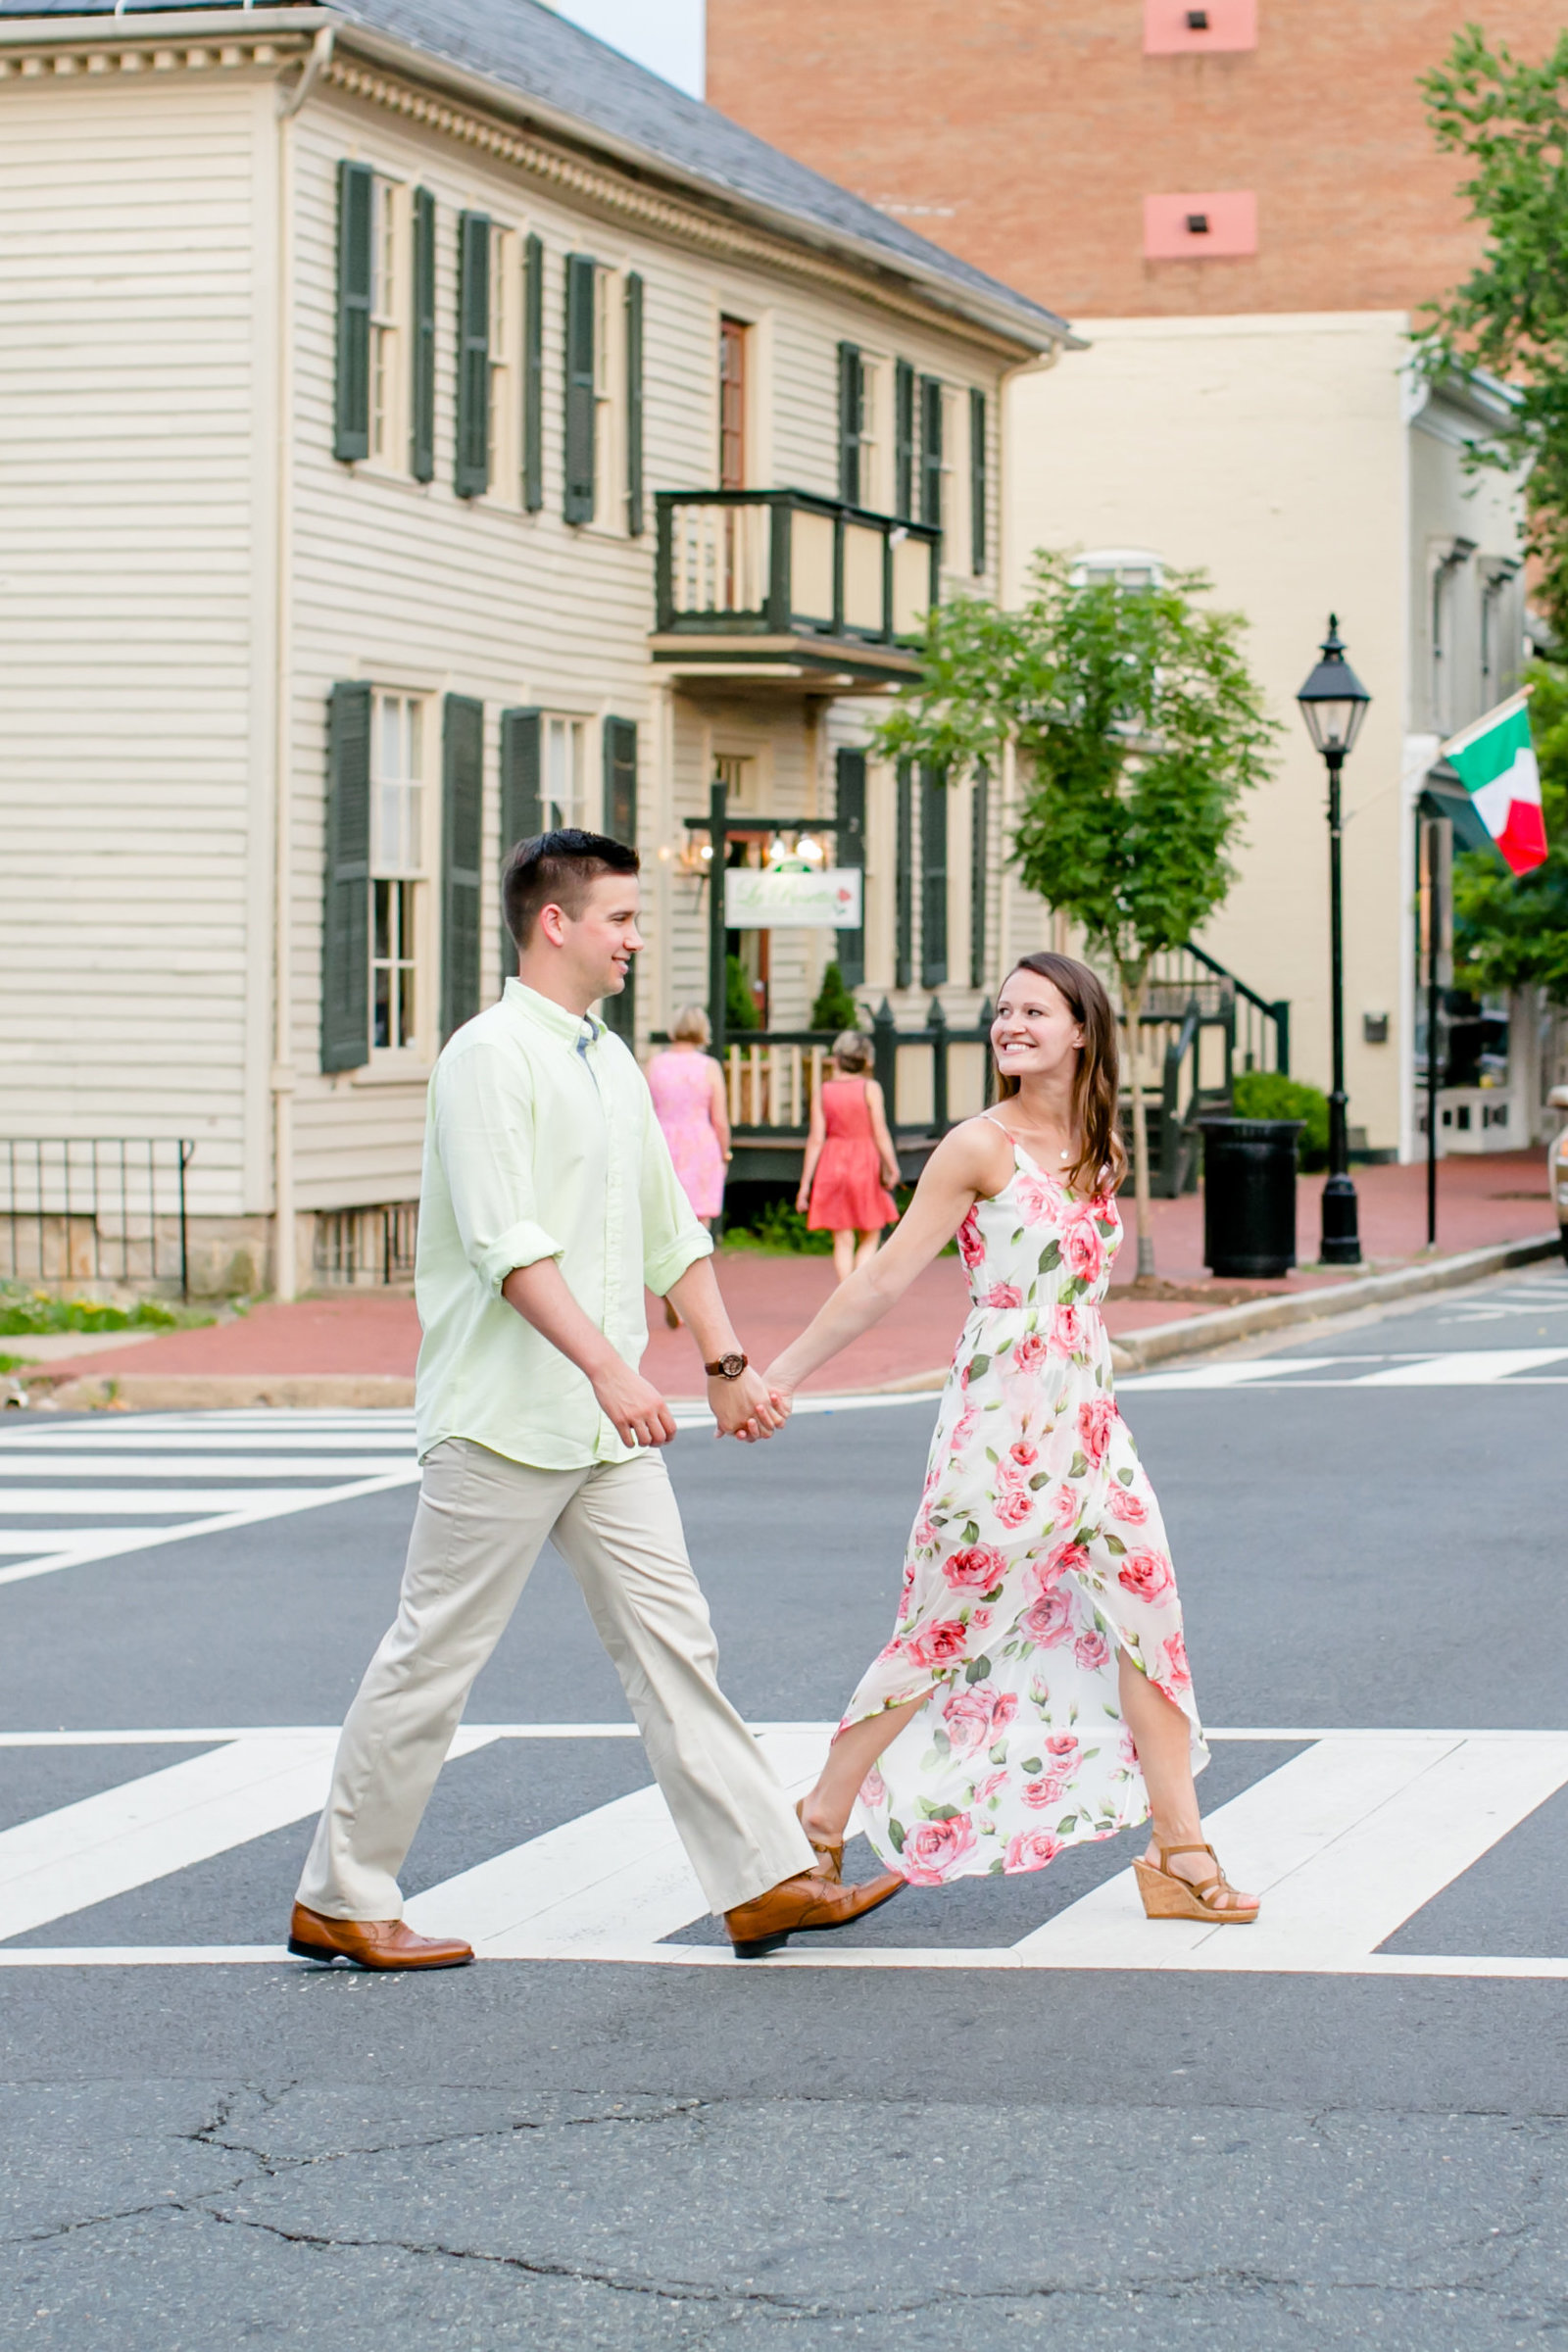 Carley Rehberg Photography - Engagement Photographer - Photo - 14